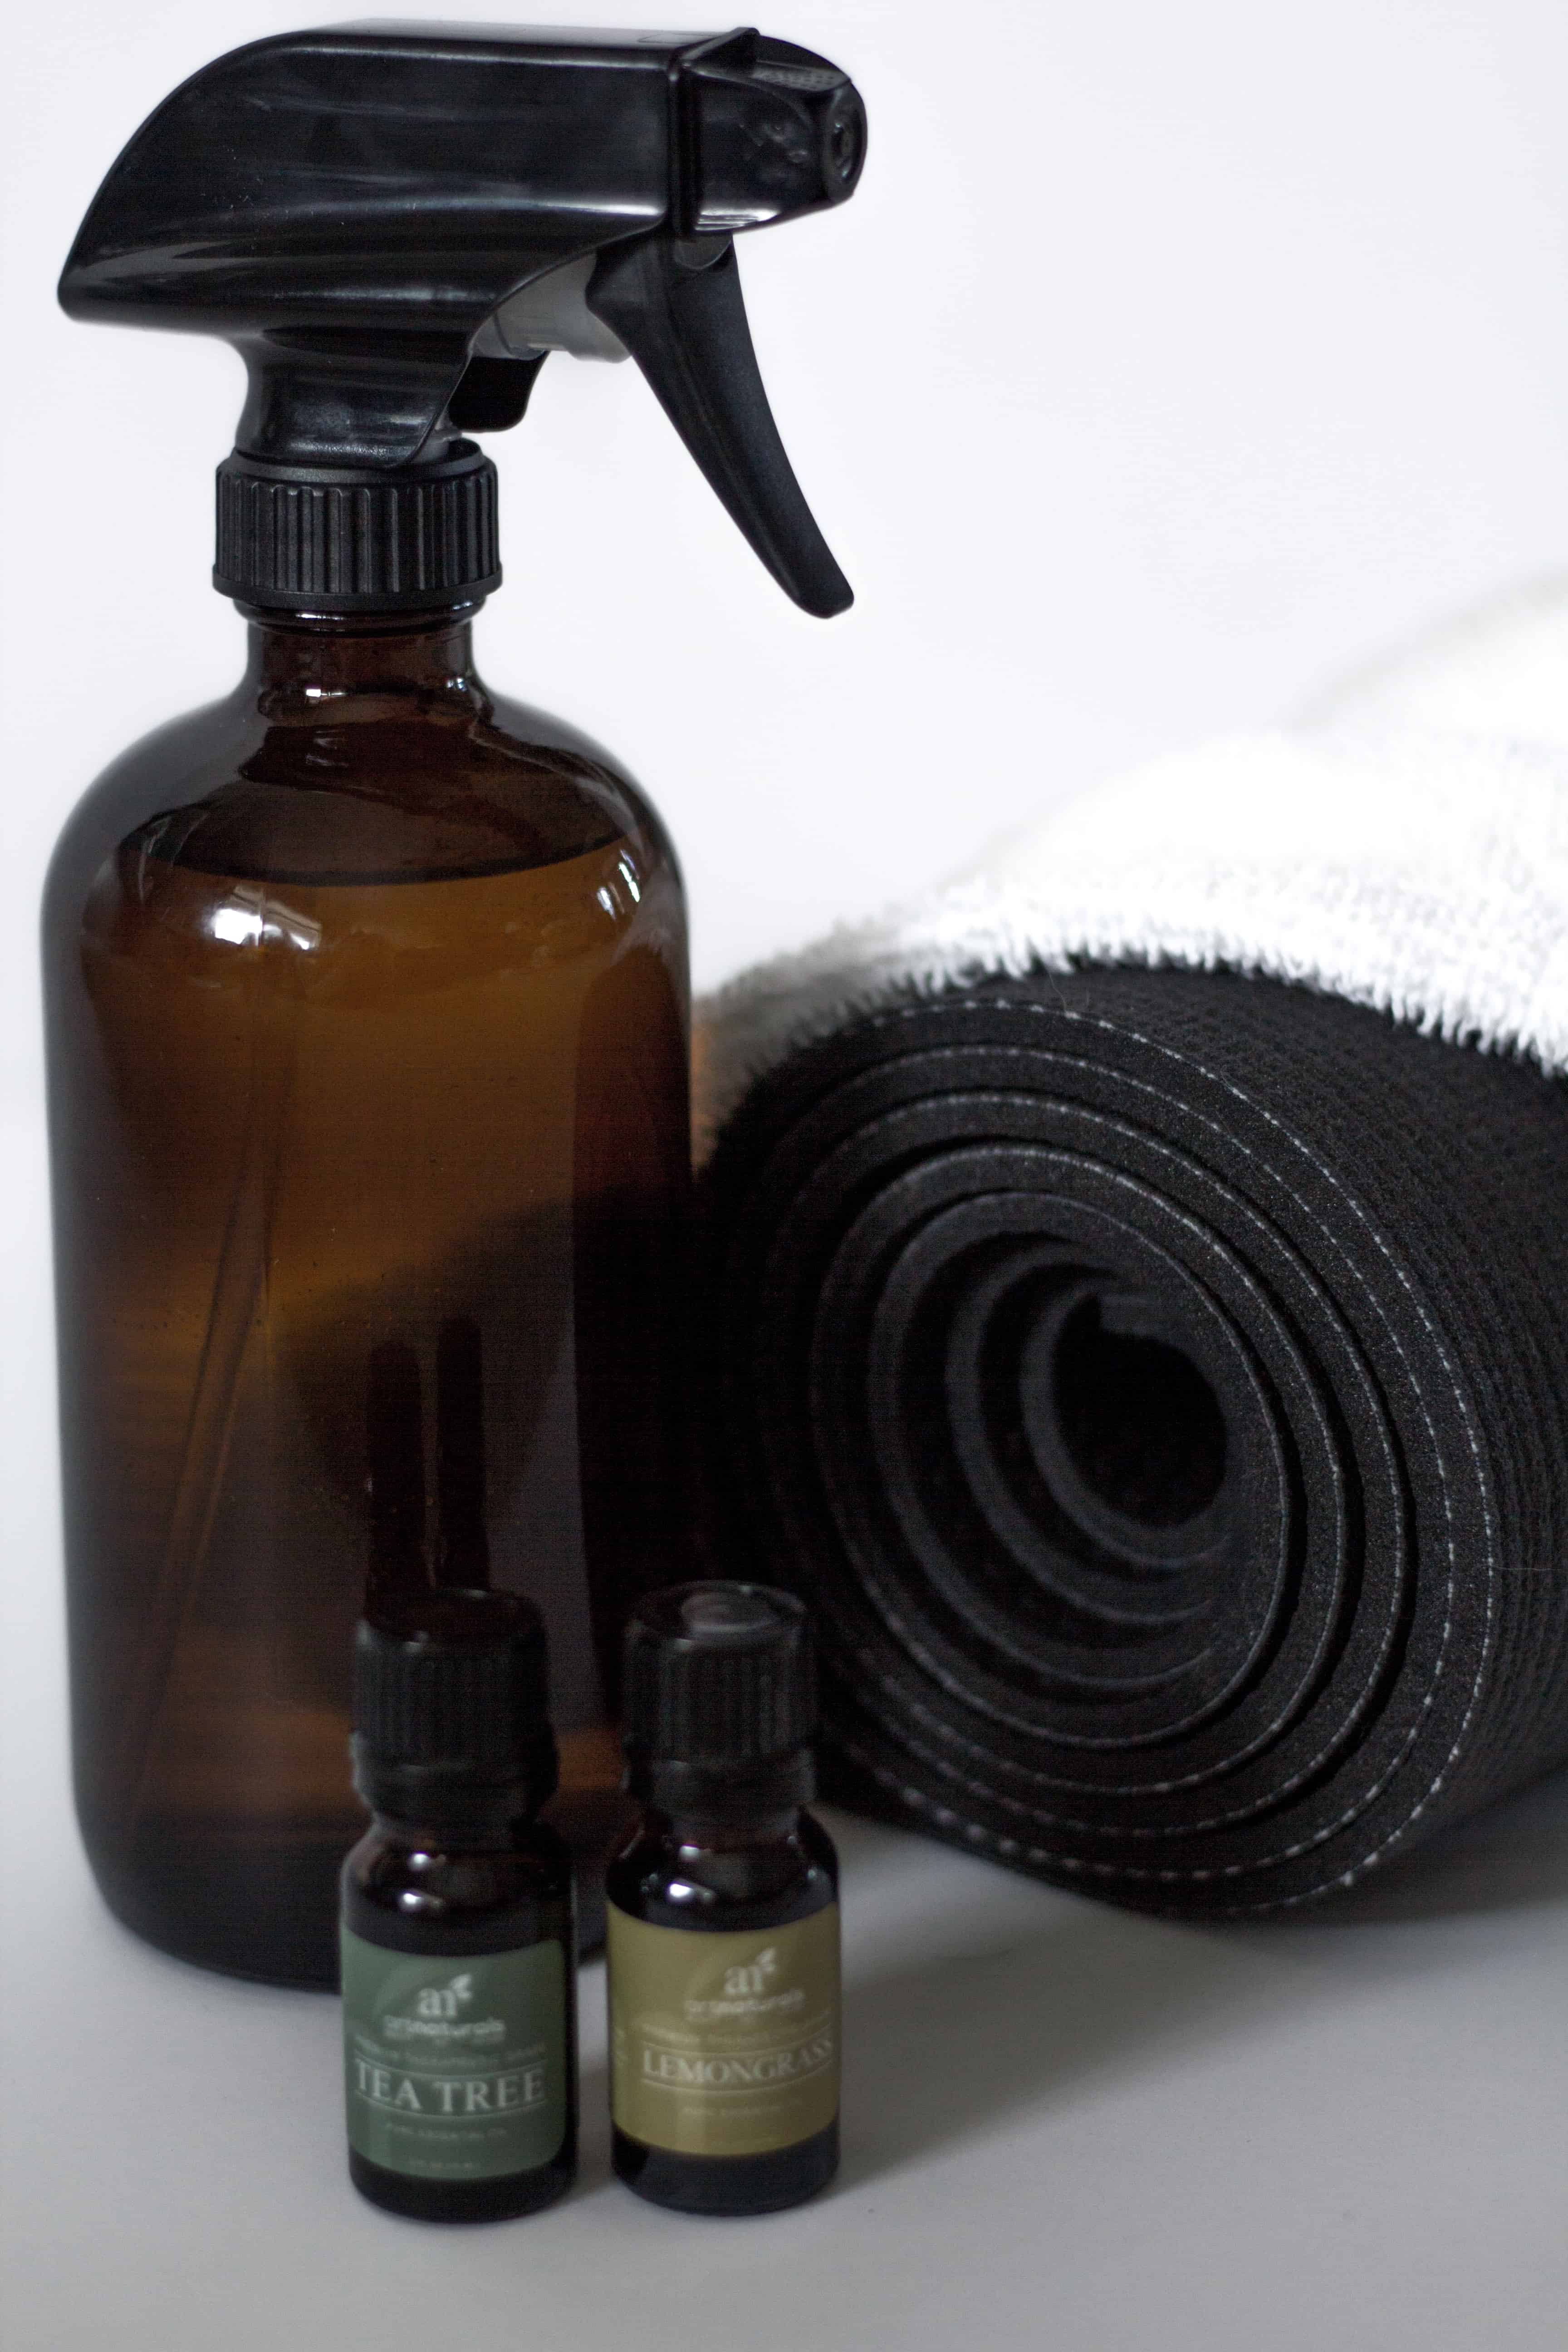 It's so important to keep your yoga mat clean. Turns out it's super easy too with this yoga mat cleaner!